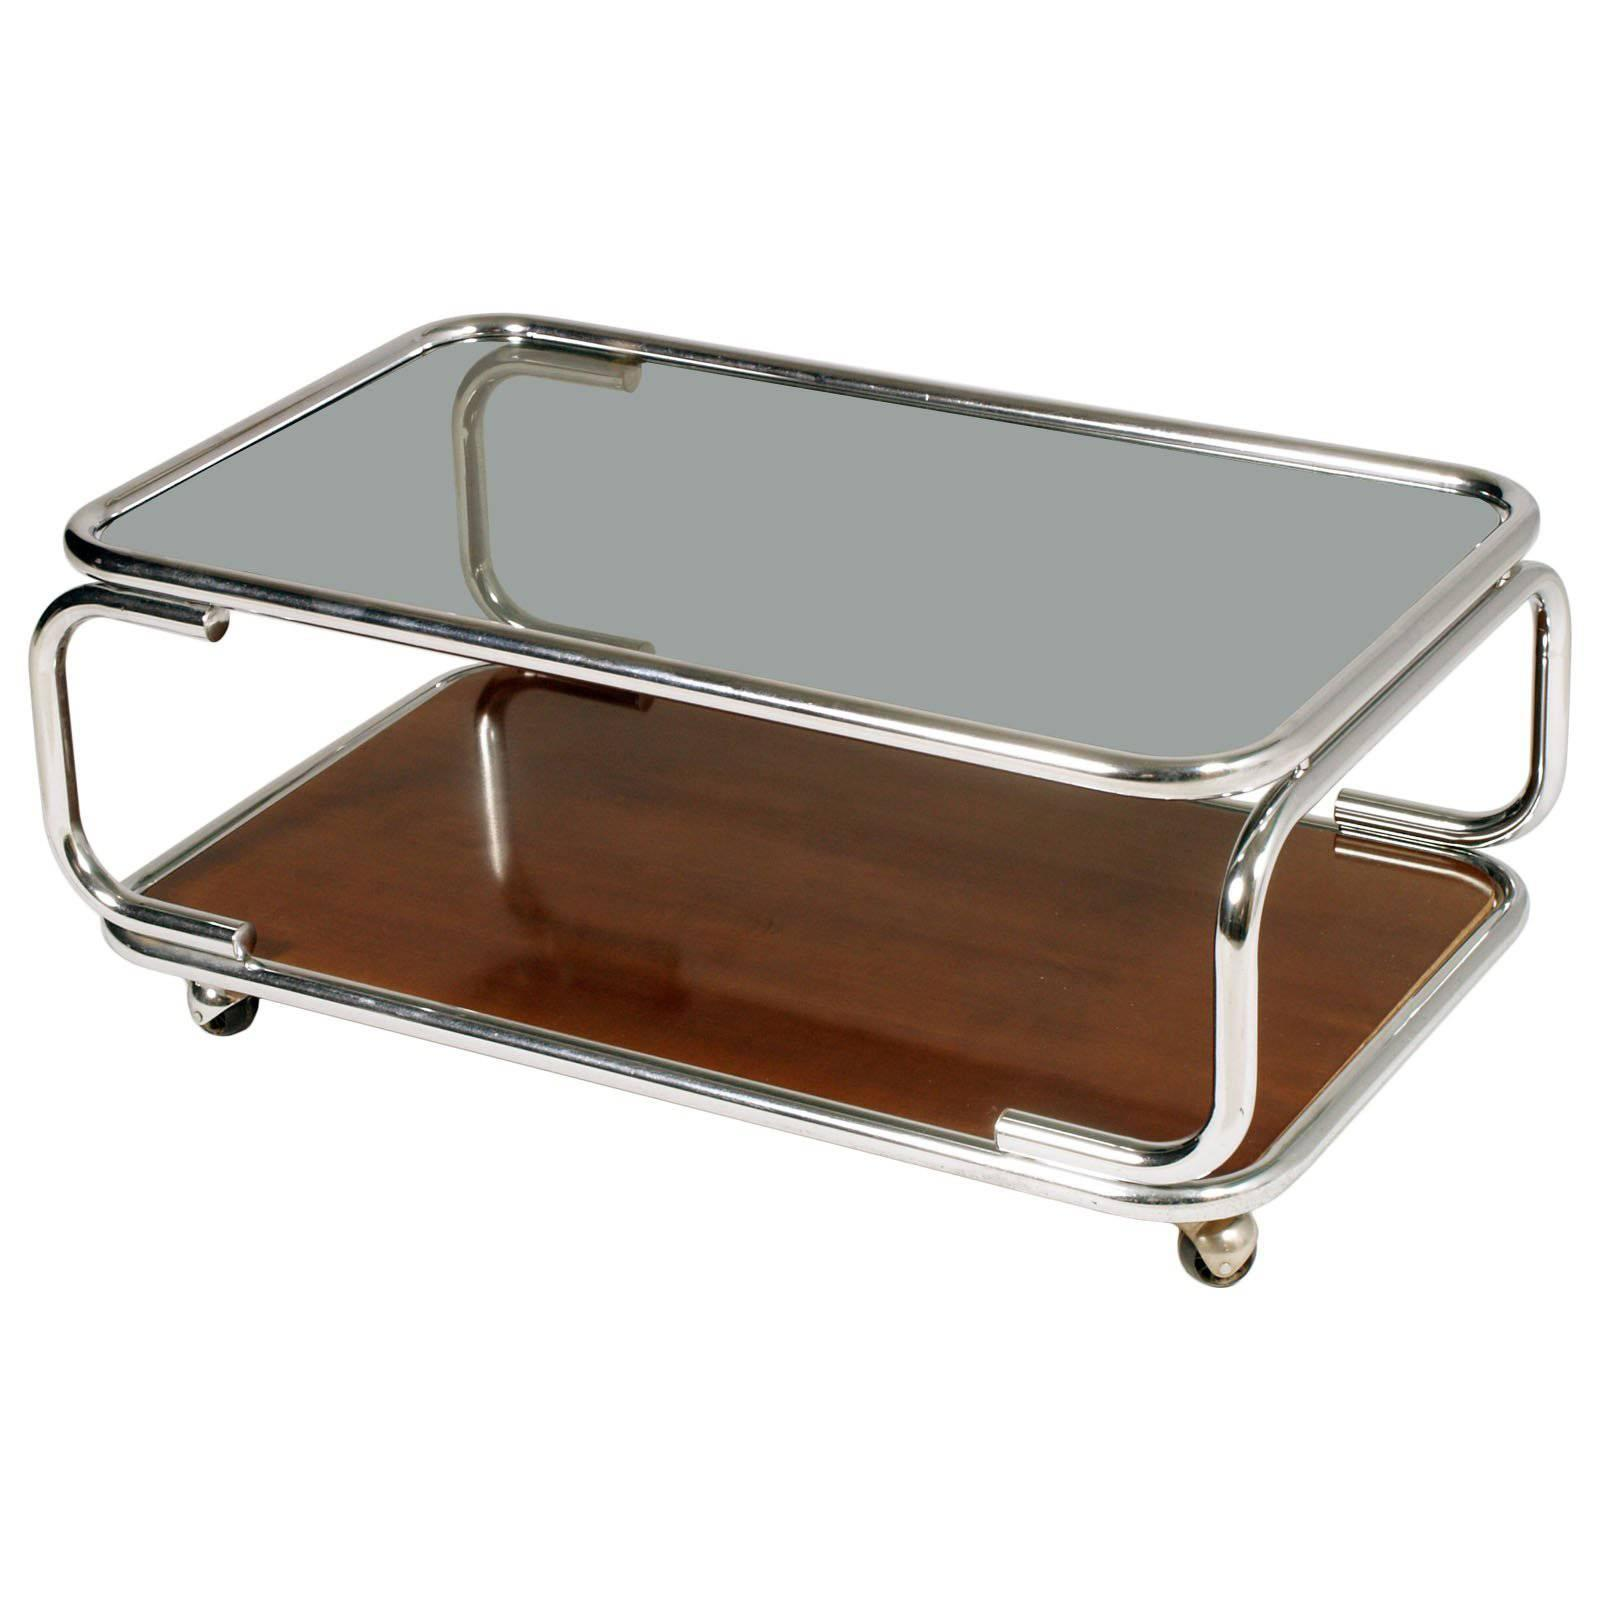 Trolley Coffee Table.1960s Chrome Serving Trolley Coffee Table Smoked Glass Top Faux Laminated Wood